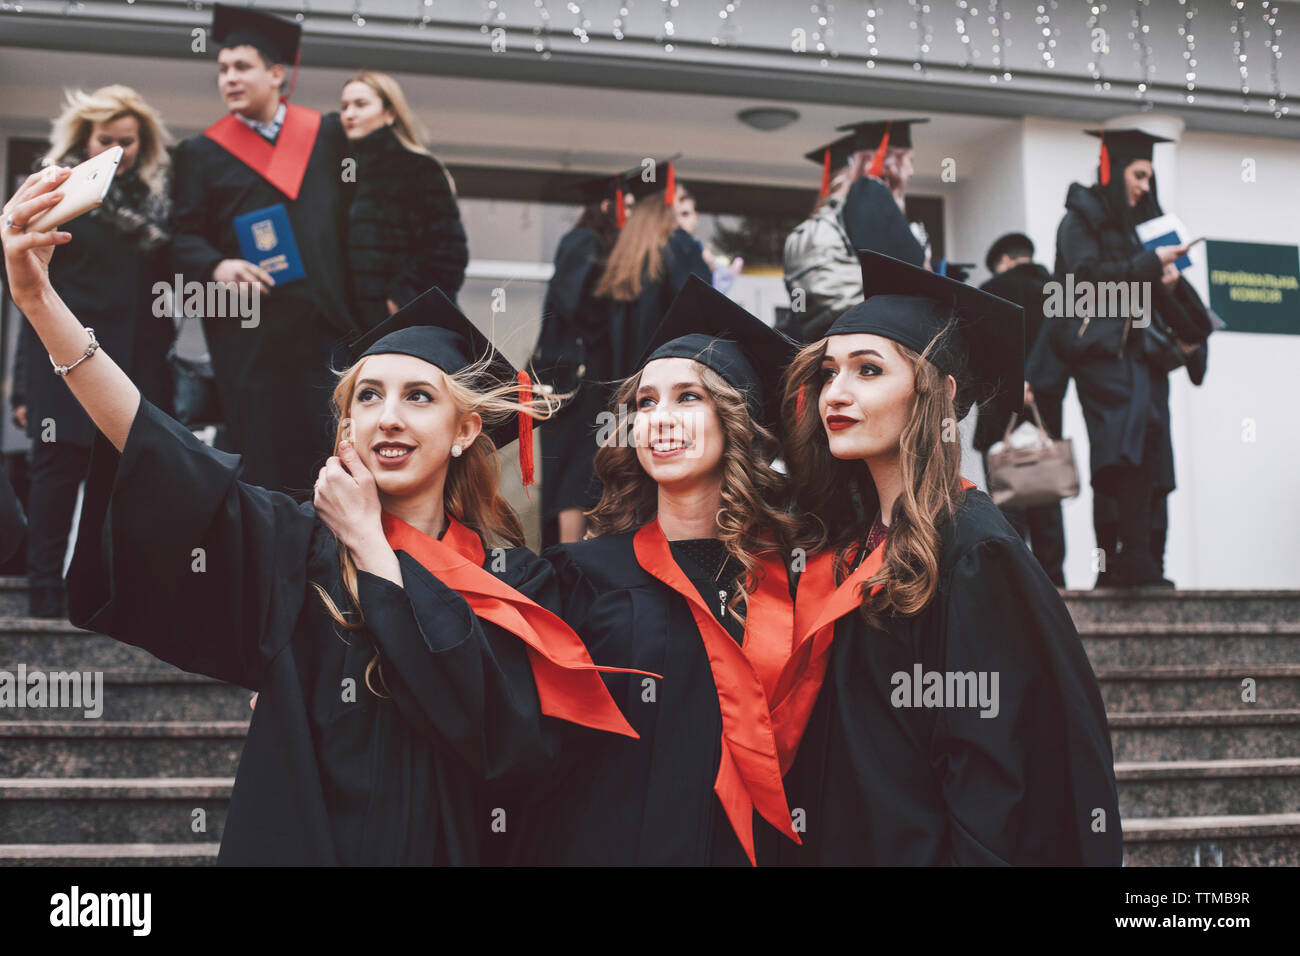 Happy female friends wearing graduation gowns taking selfie while standing on steps - Stock Image